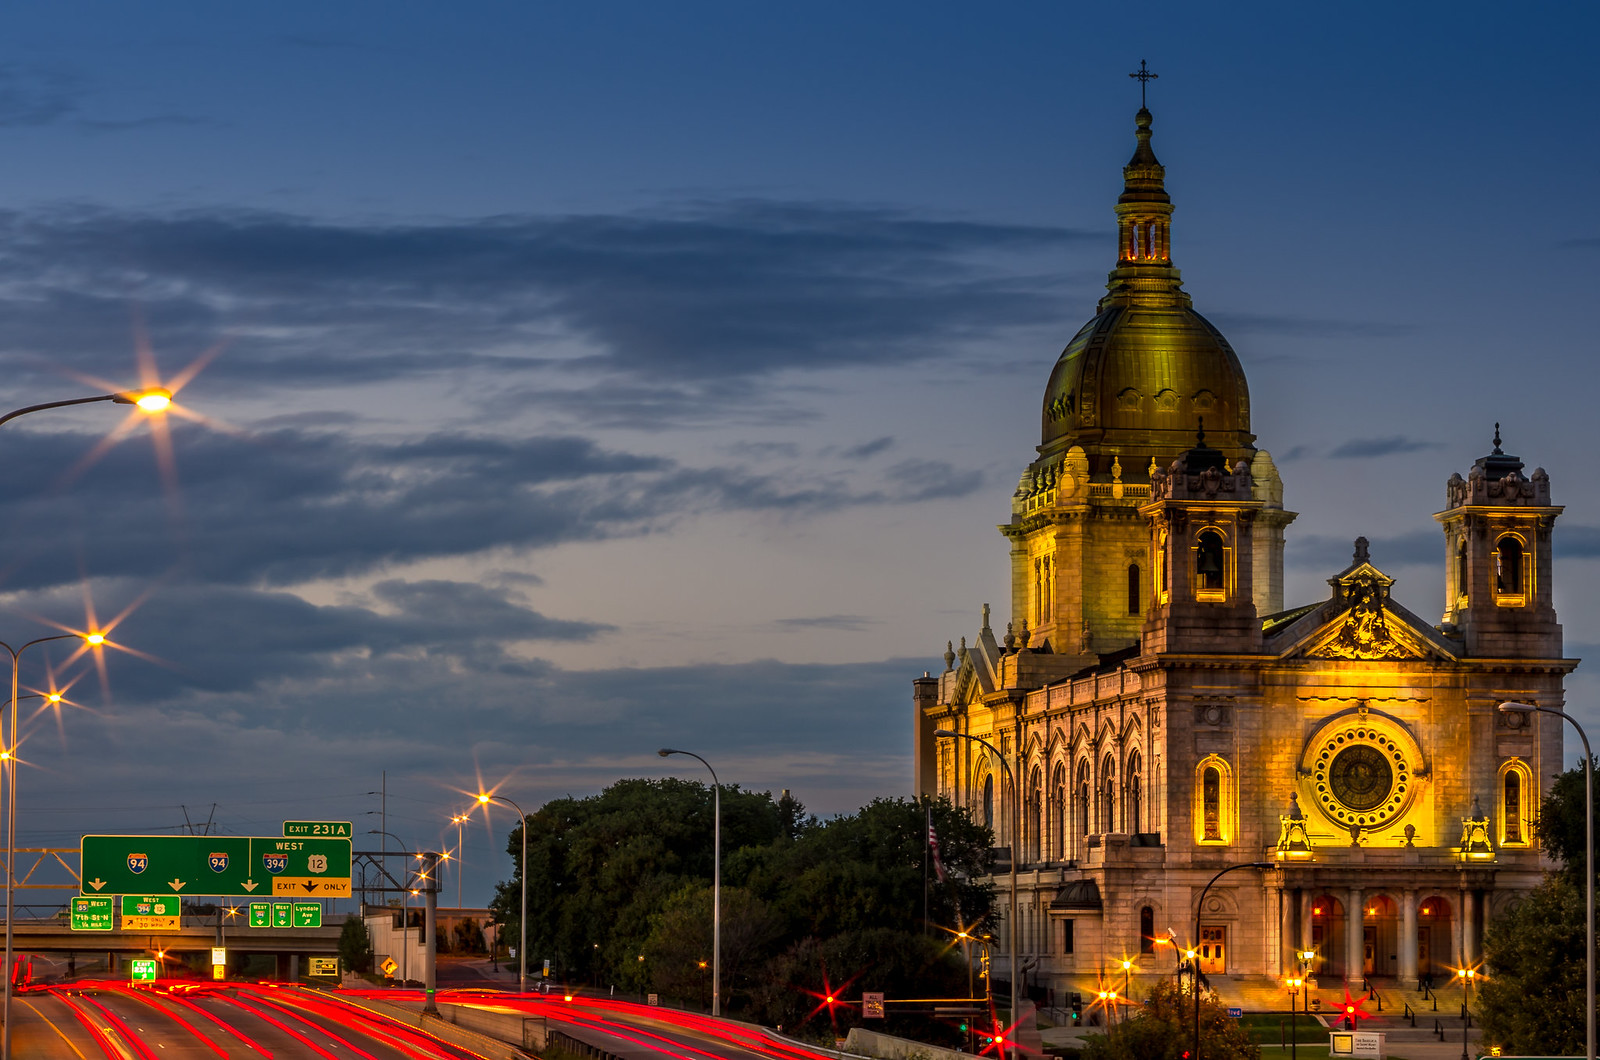 basilica of st. mary in minneapolis at night